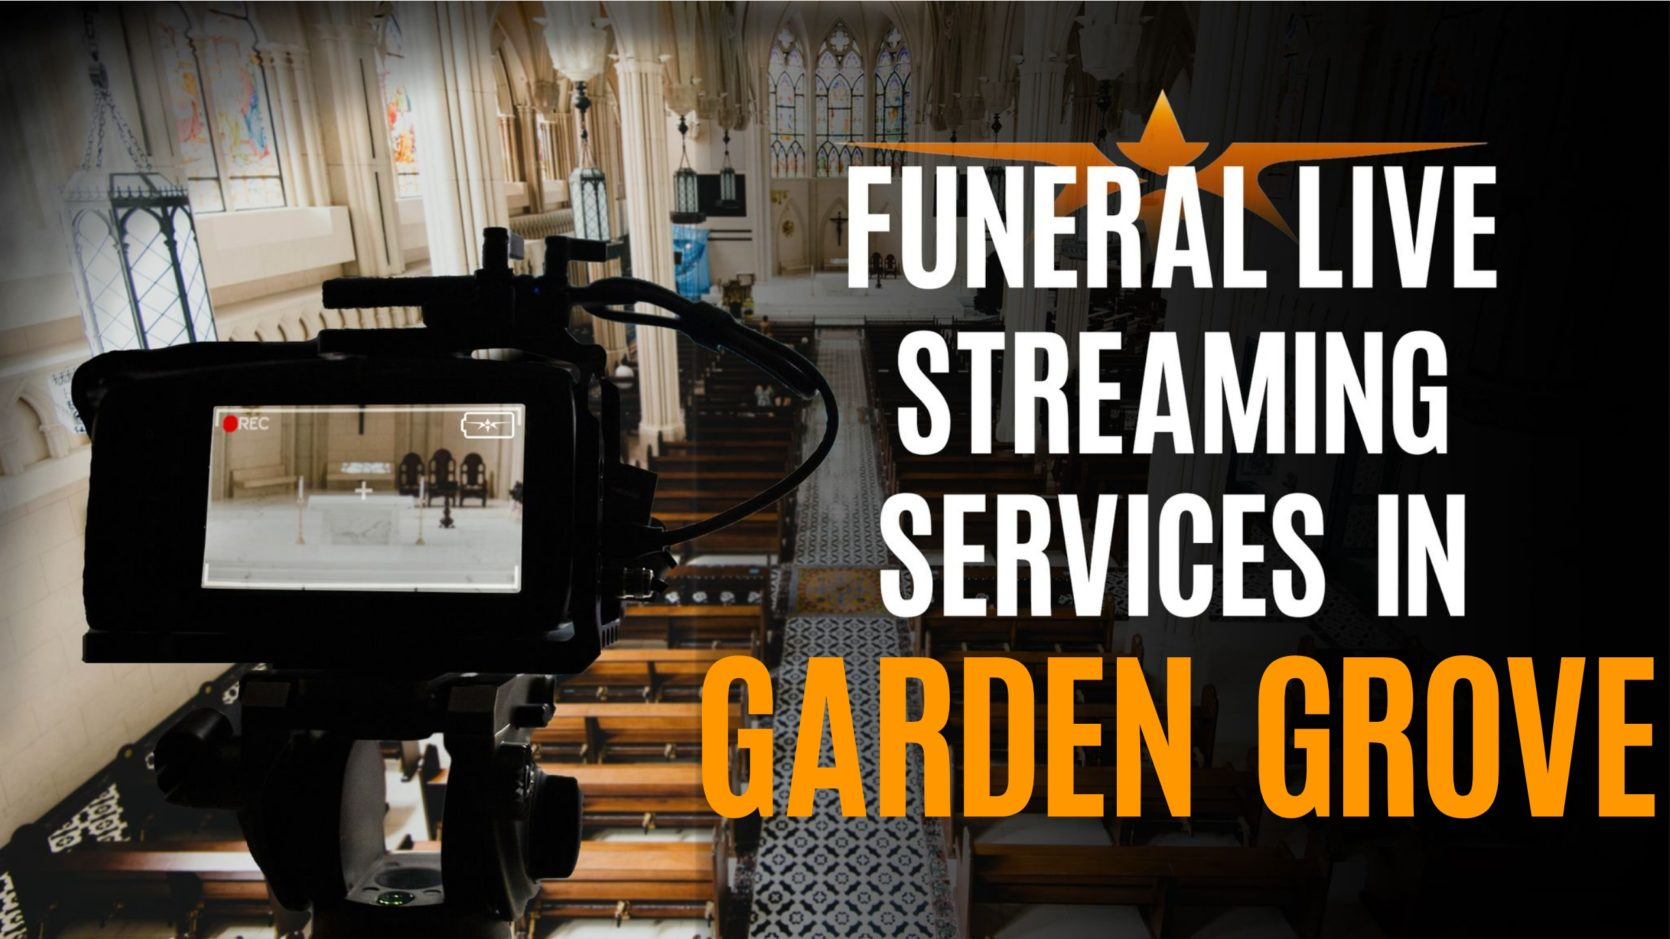 Funeral Live Streaming Services in Garden Grove